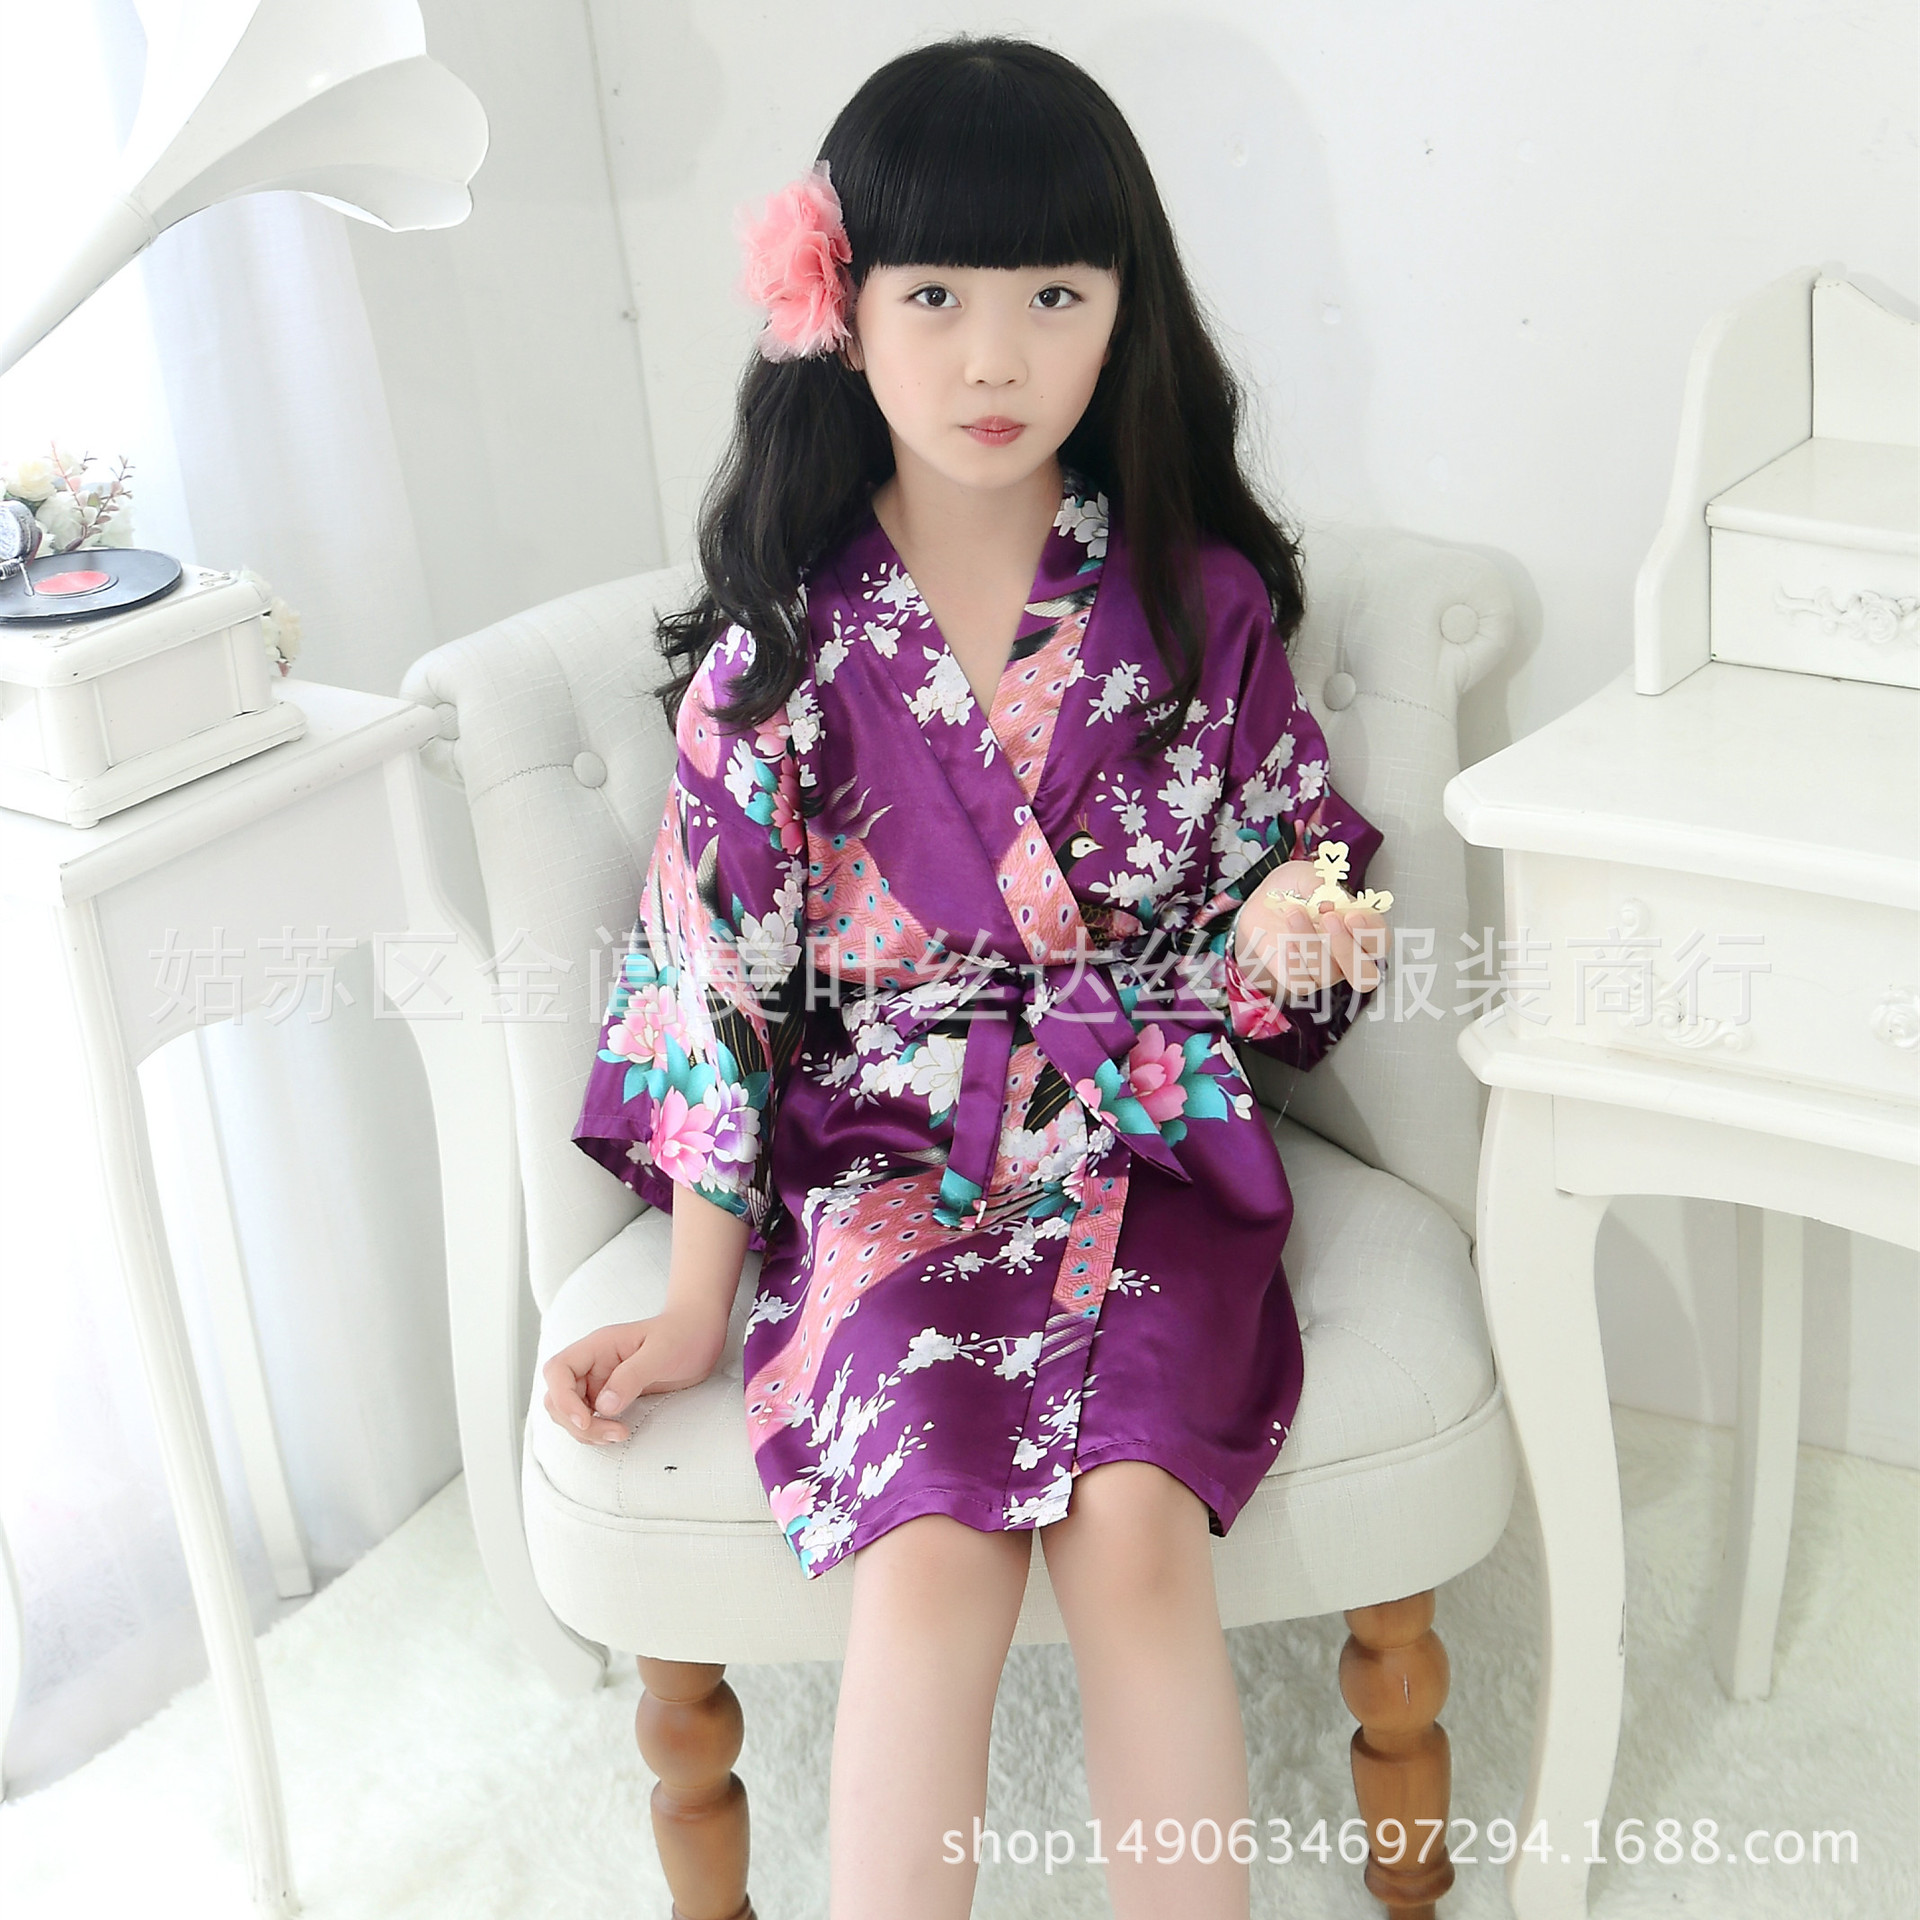 Silk Children One-Piece Peacock Kimono Robe Nightgown Pajamas AliExpress Hot Selling